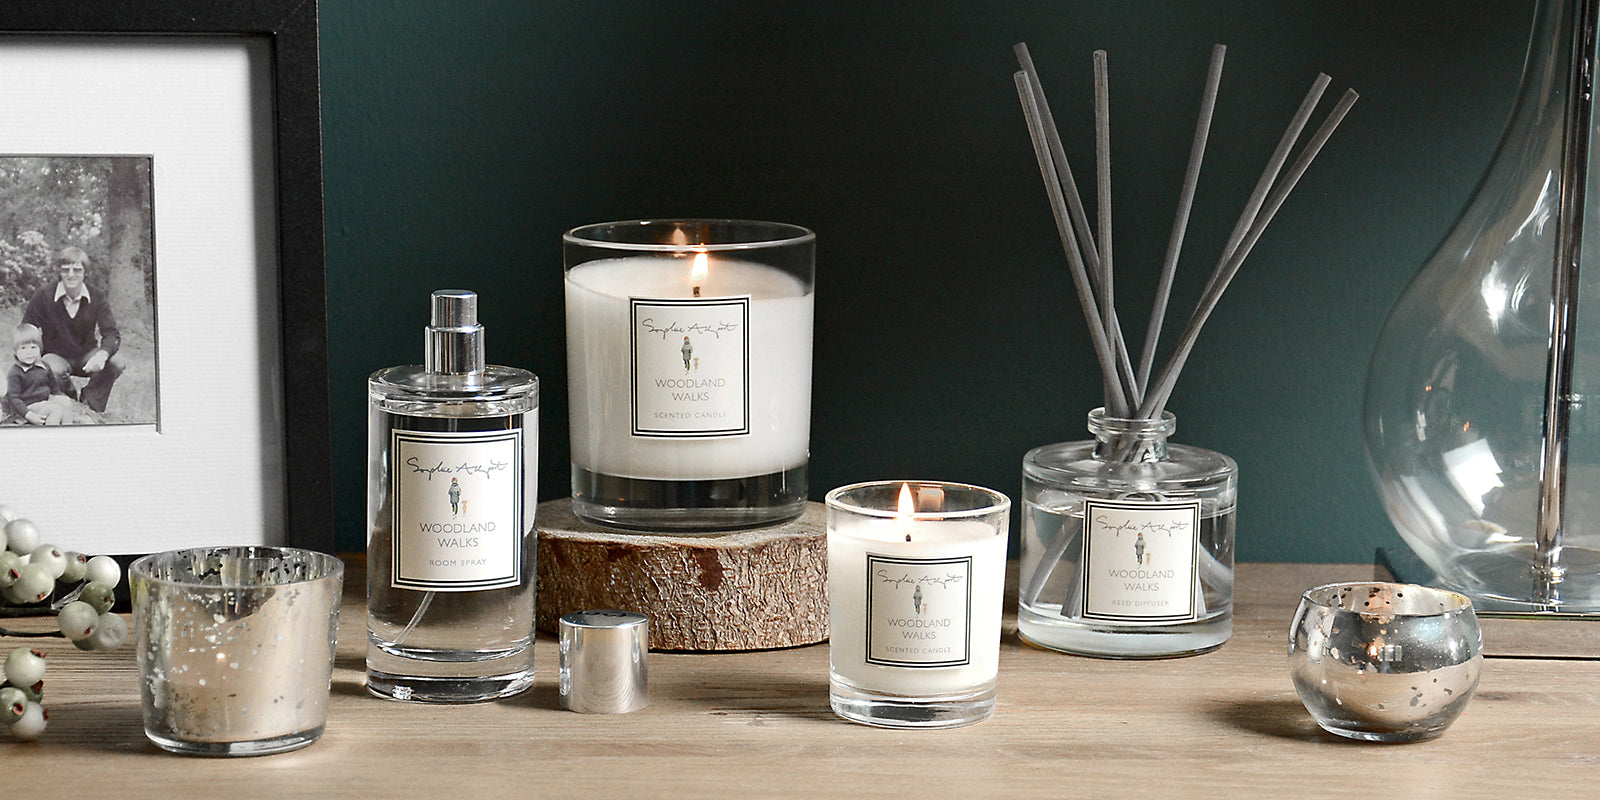 Woodland Walks Home Scent by Sophie Allport